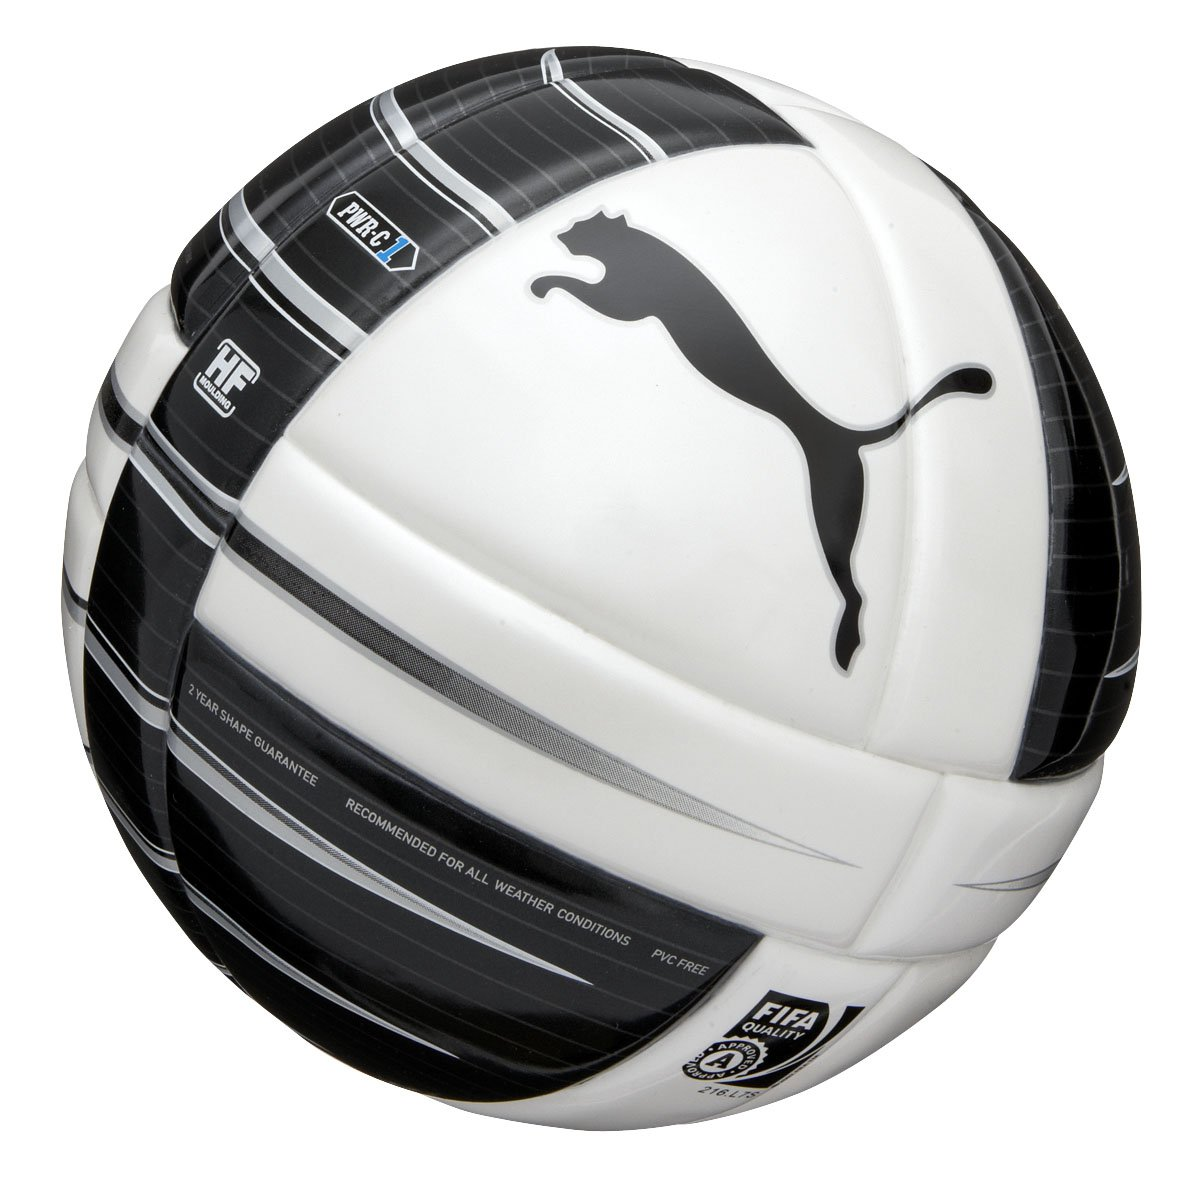 Erhard Sport 081483 10 PowerCat 1.10 - Balón (talla 5), color ...